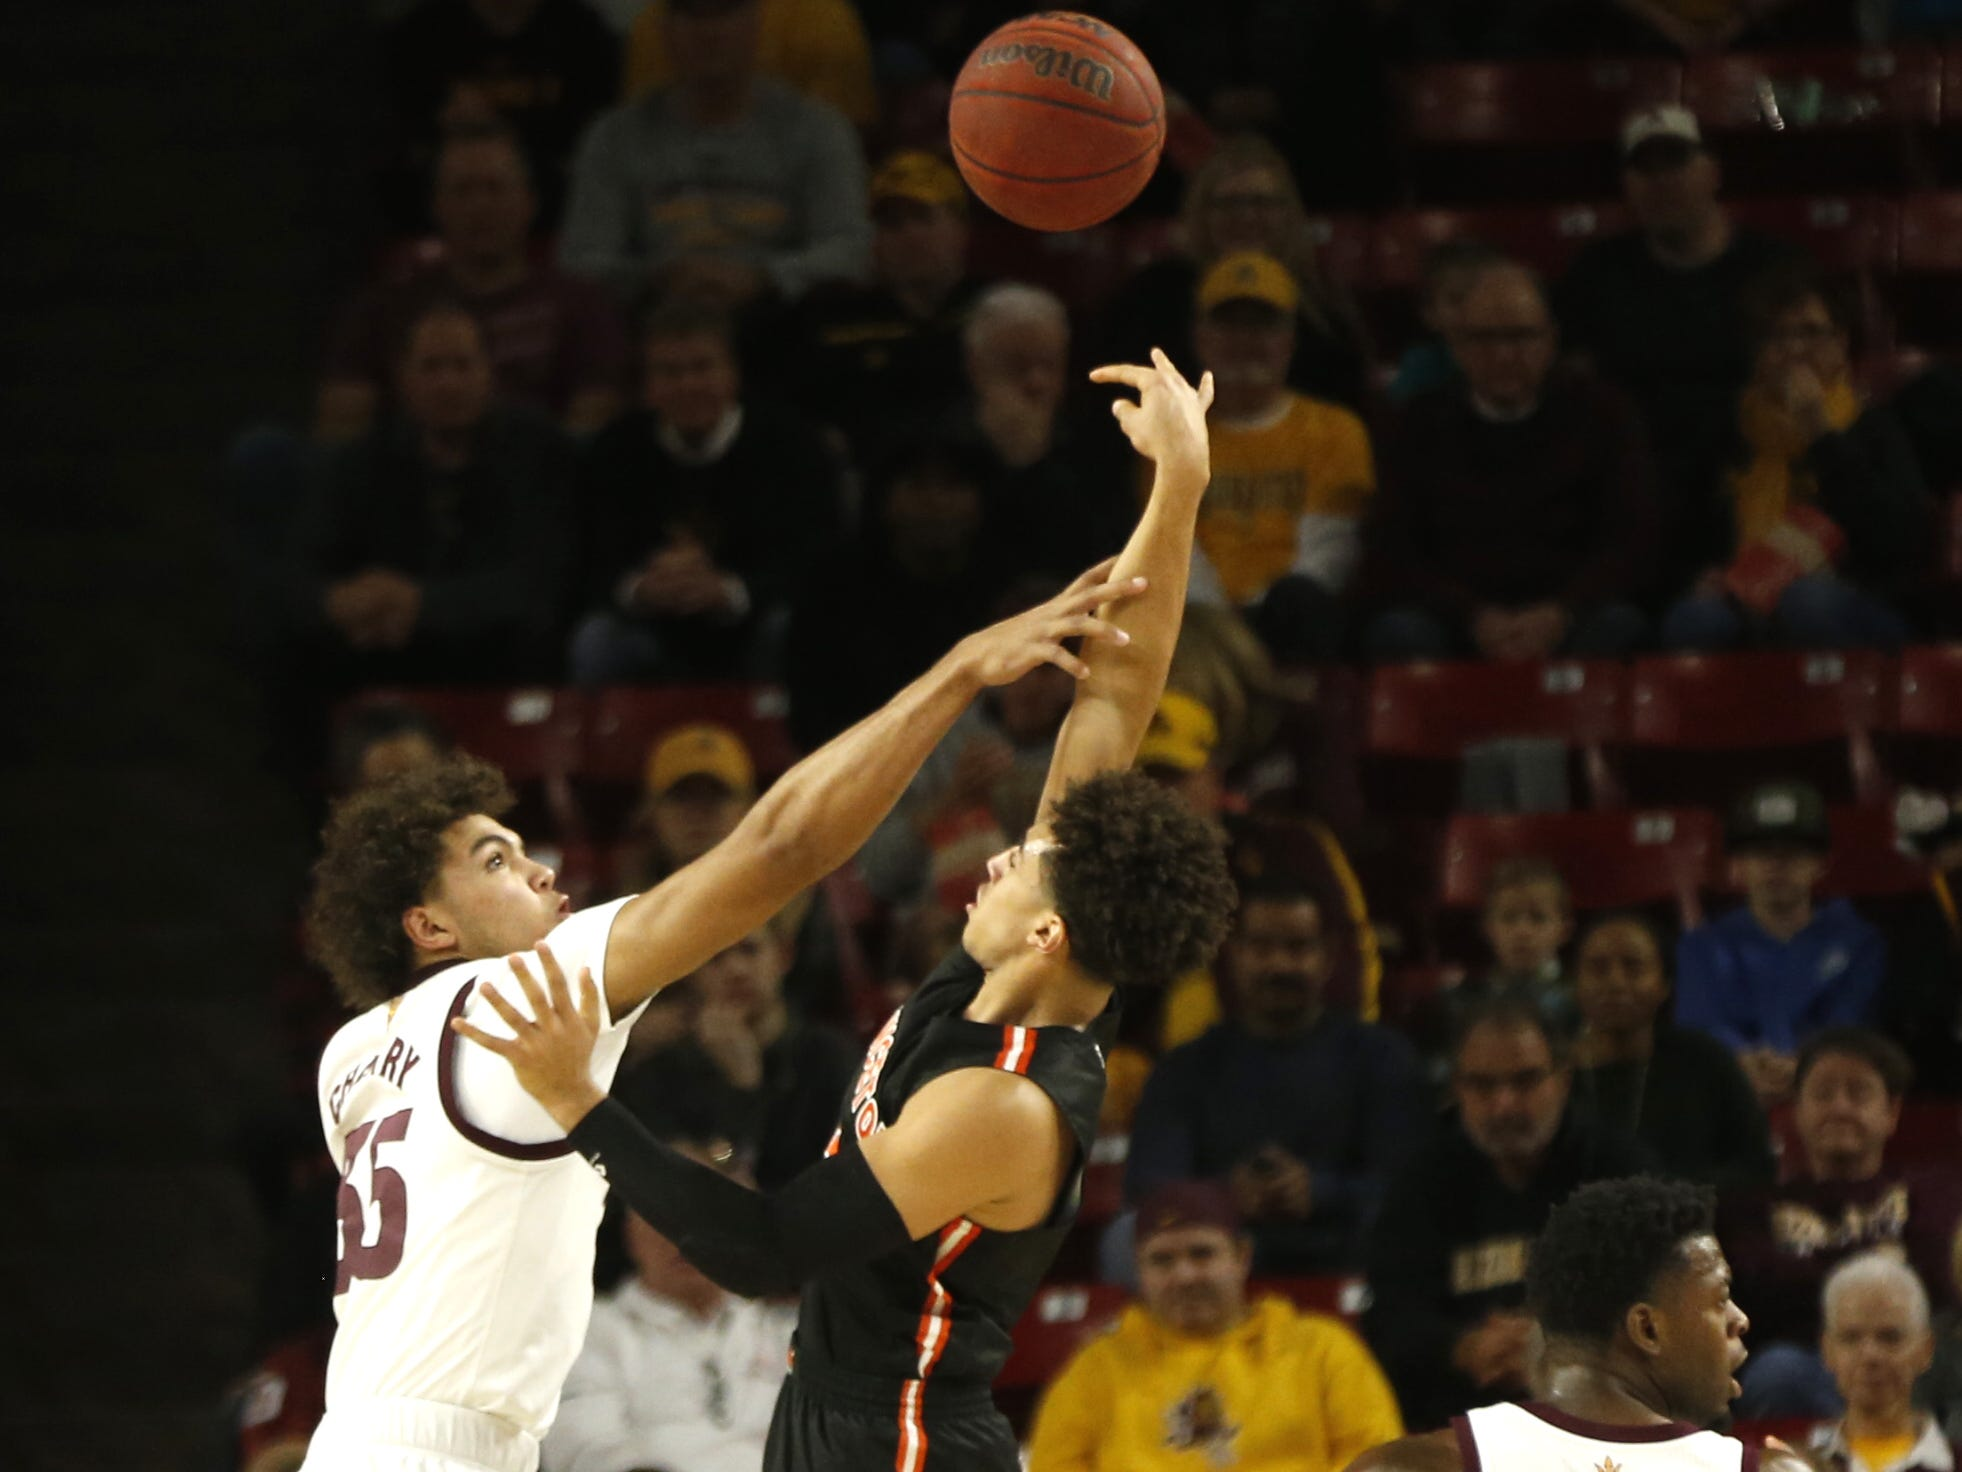 ASU's Taeshon Cherry (35) attempts to block Princeton's Devin Cannady (3) during the first half at Wells Fargo Arena in Tempe, Ariz. on December 29, 2018.